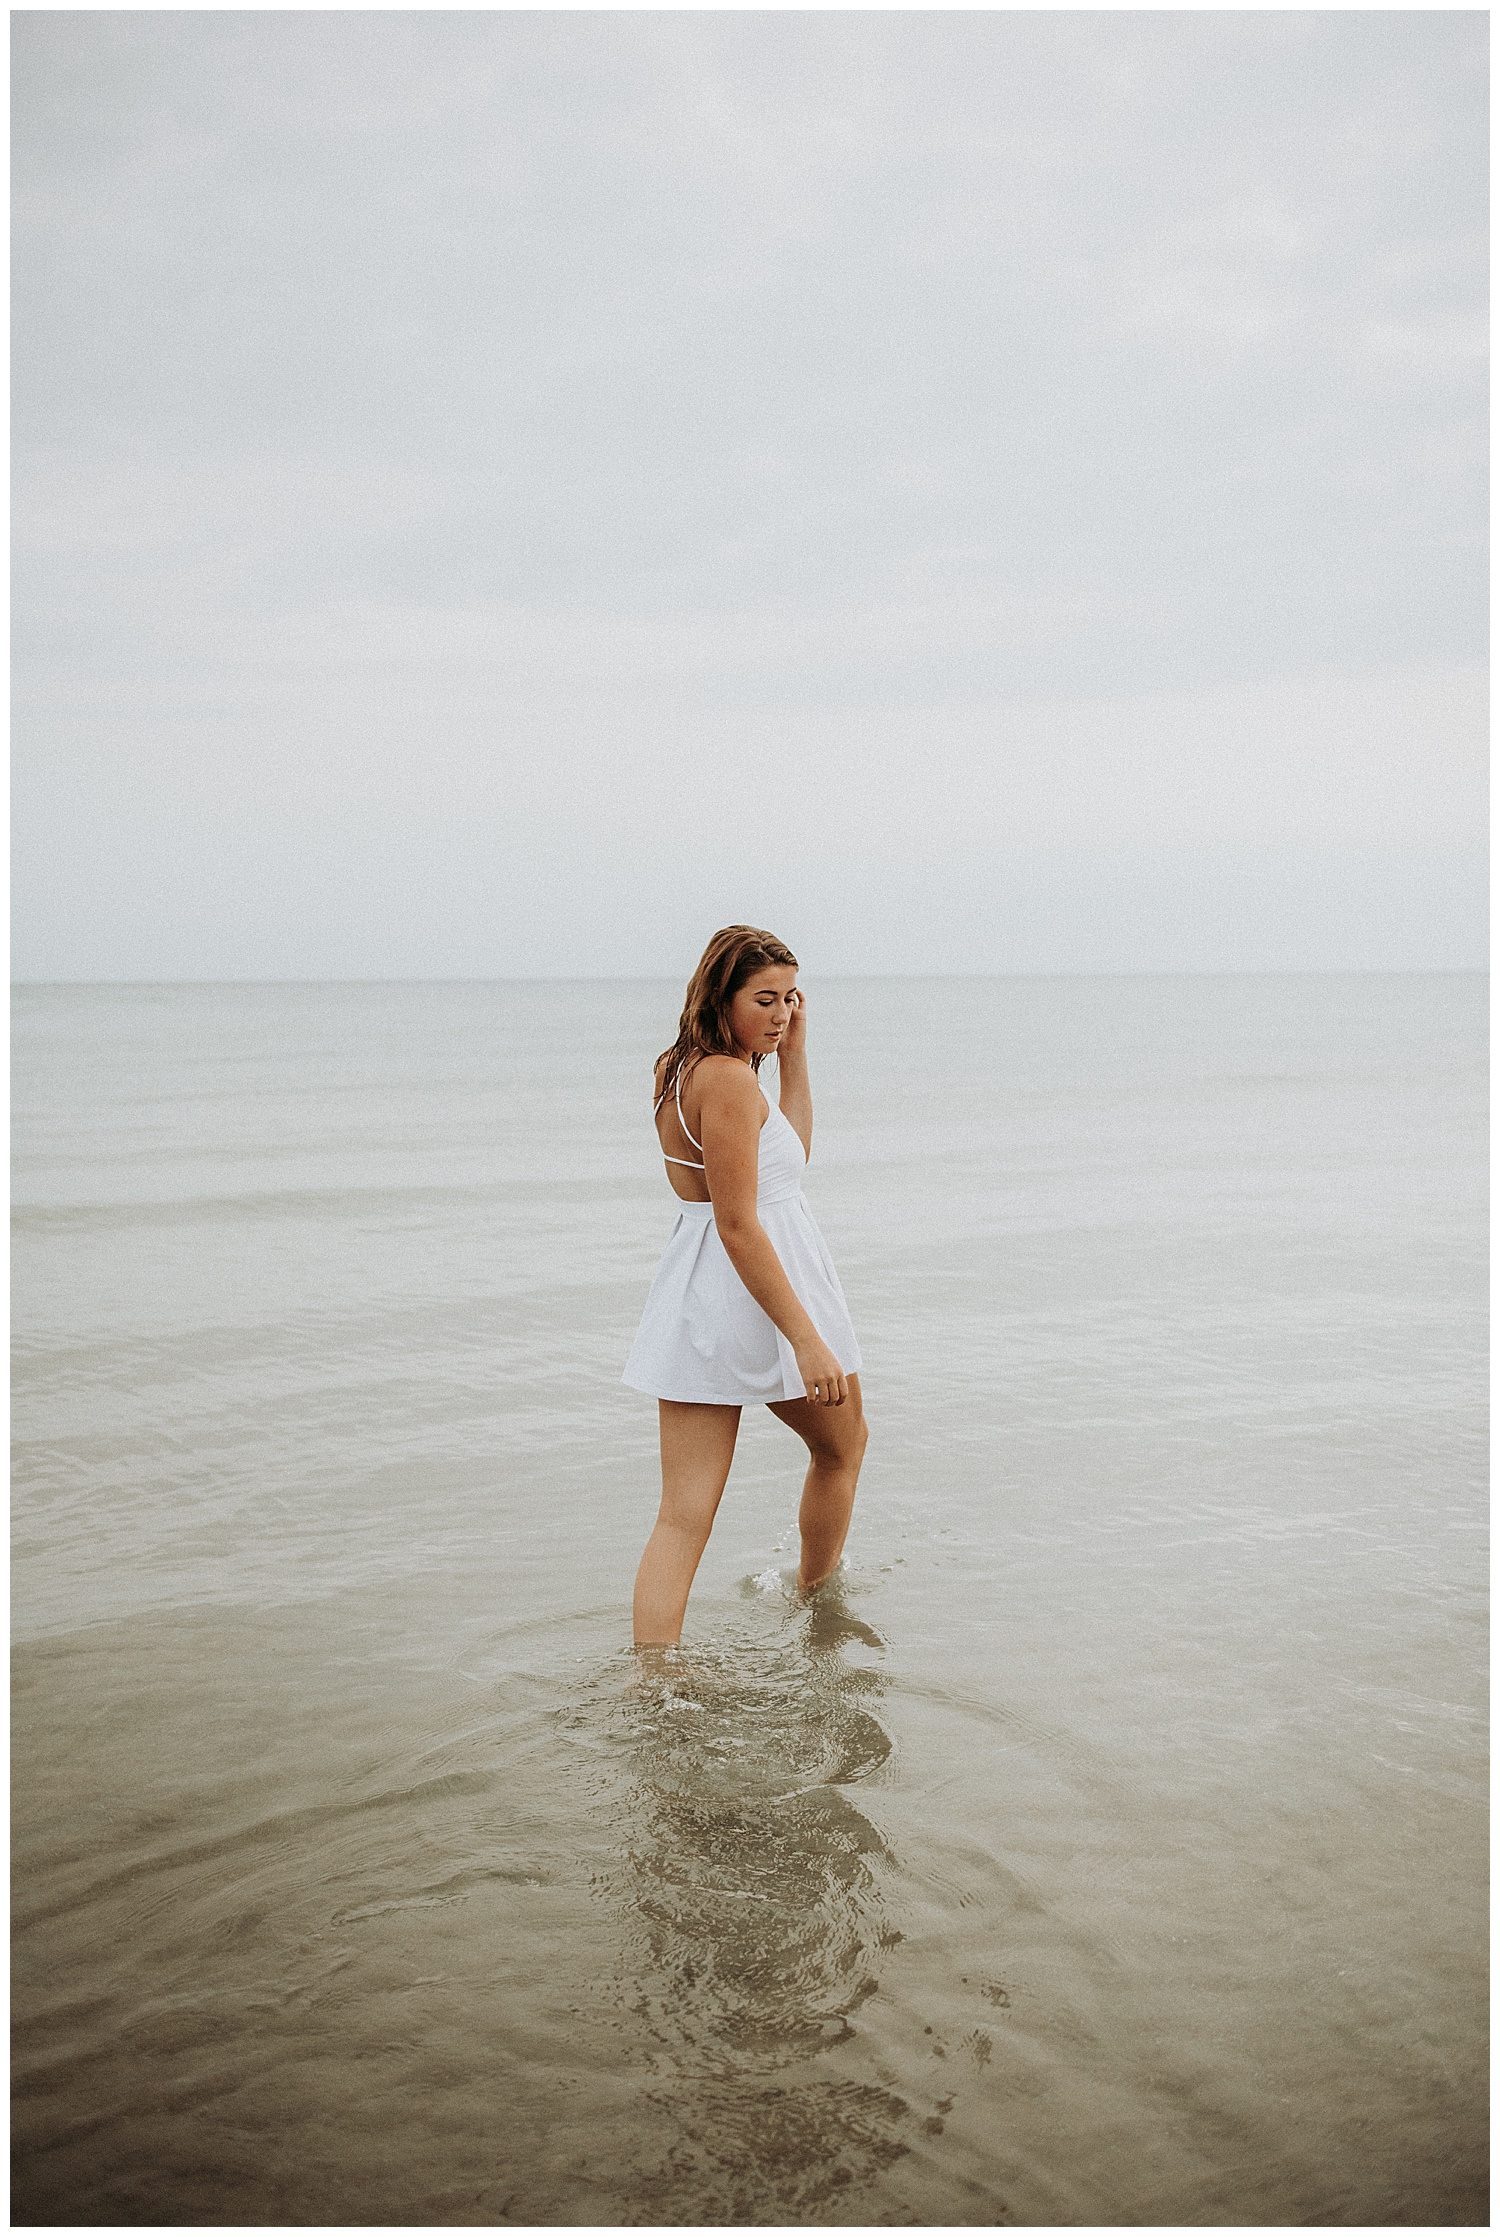 Holly McMurter Photographs | Prince Edward County Beach Boudoir